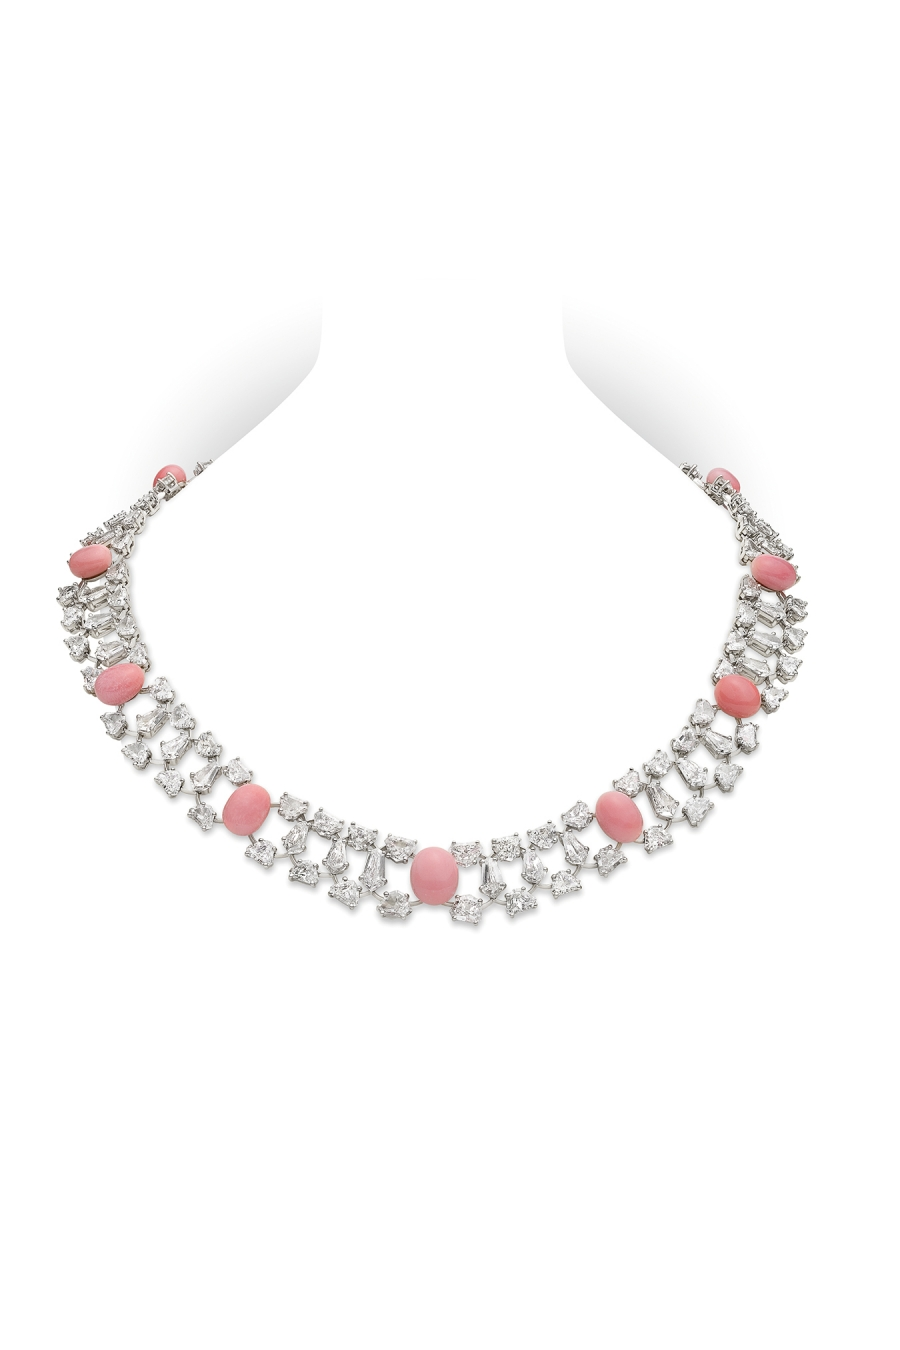 Conch Pearl And Diamond Necklace